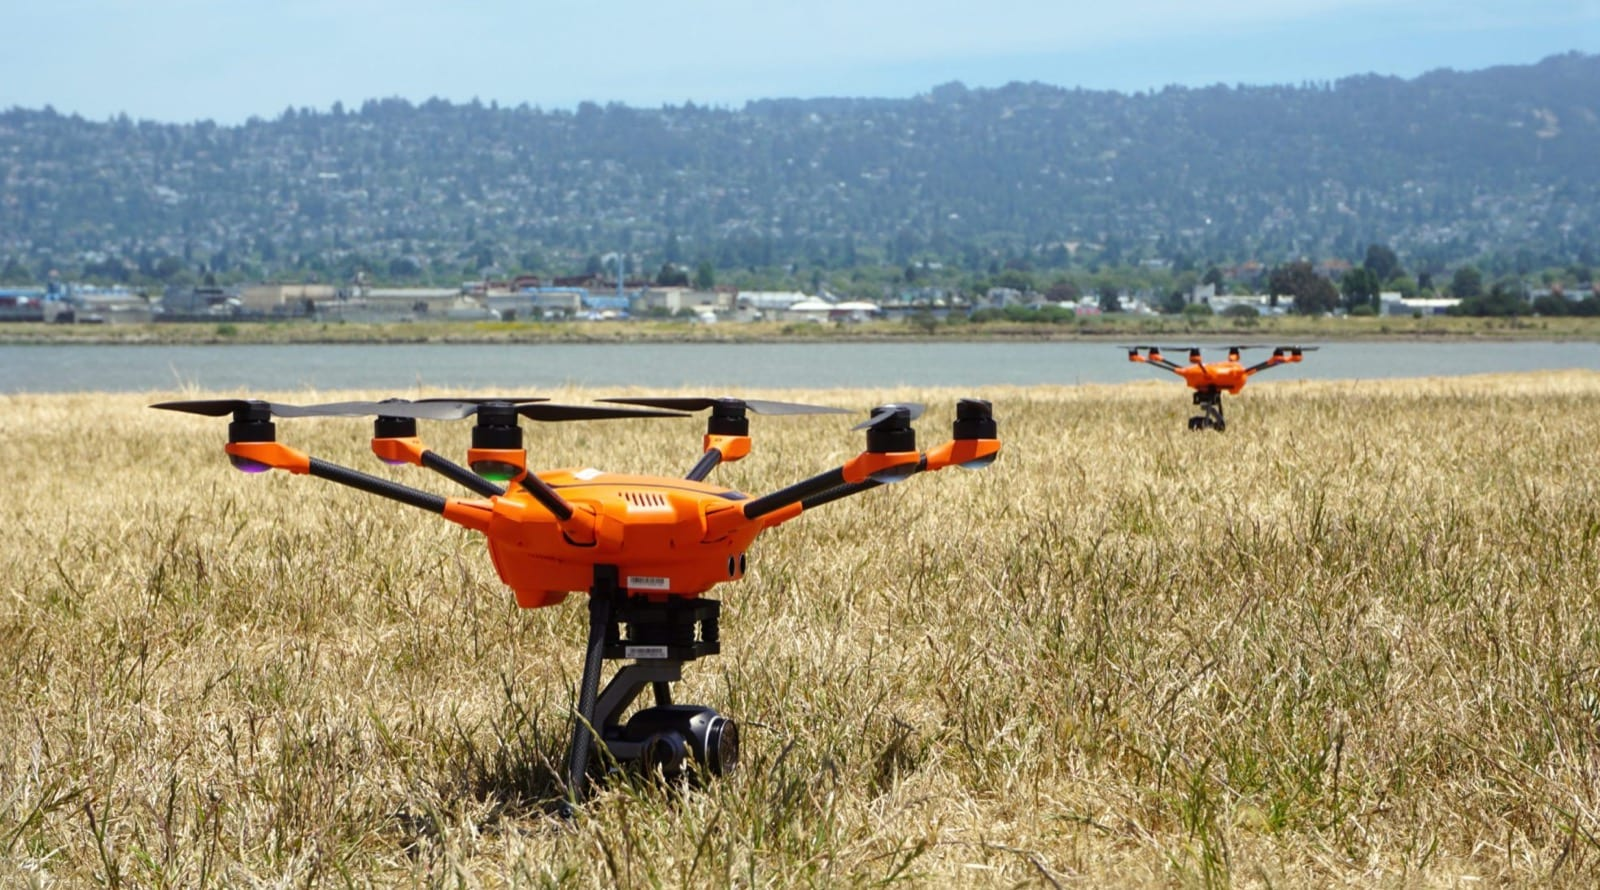 3DR's Chris Anderson suggests four ways DJI can stay 'out of the penalty box'